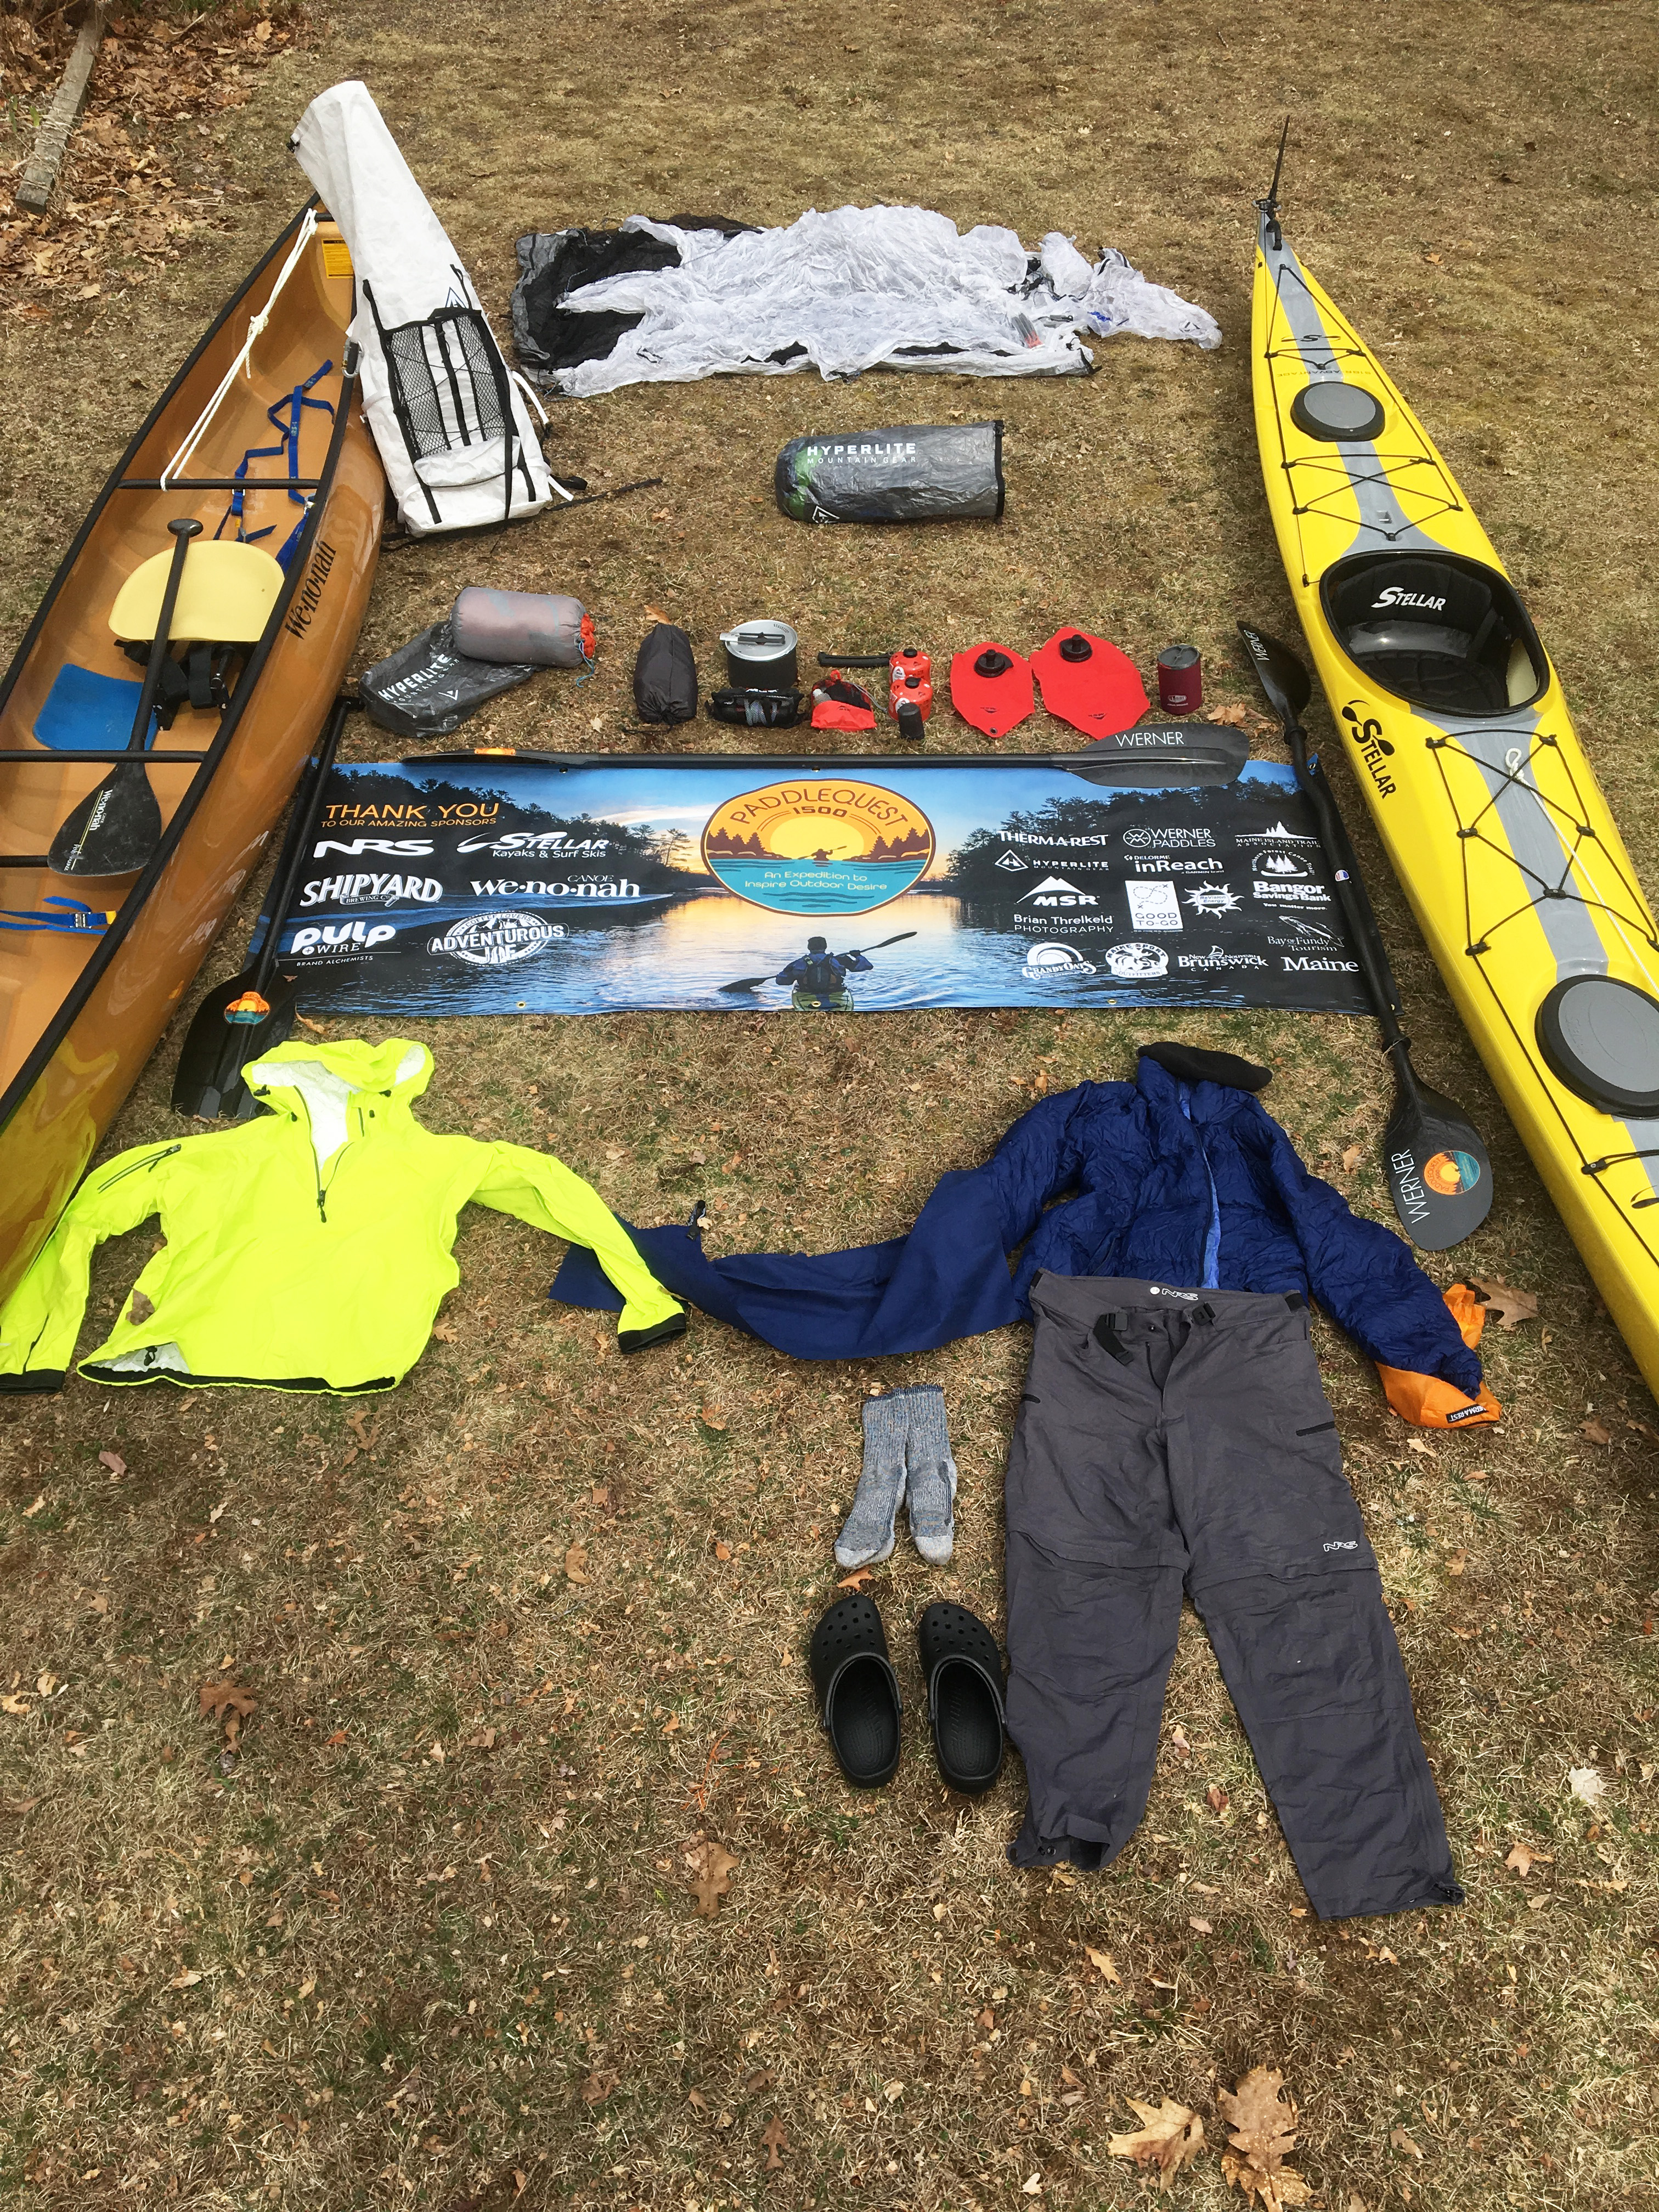 Paddlequest 1500 Expedition Paddling Amp Camping Kit Paddle Quest 1500